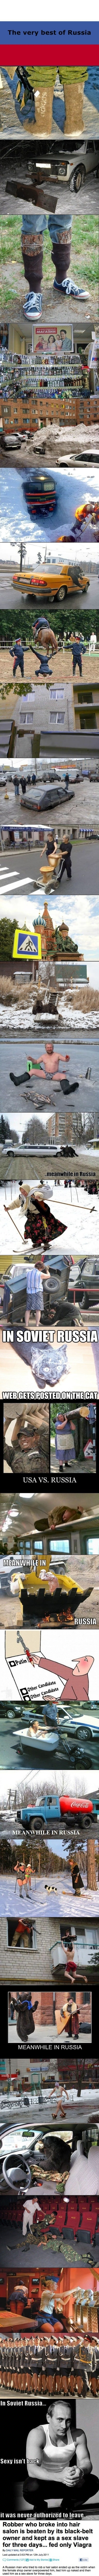 Oh, those Russians